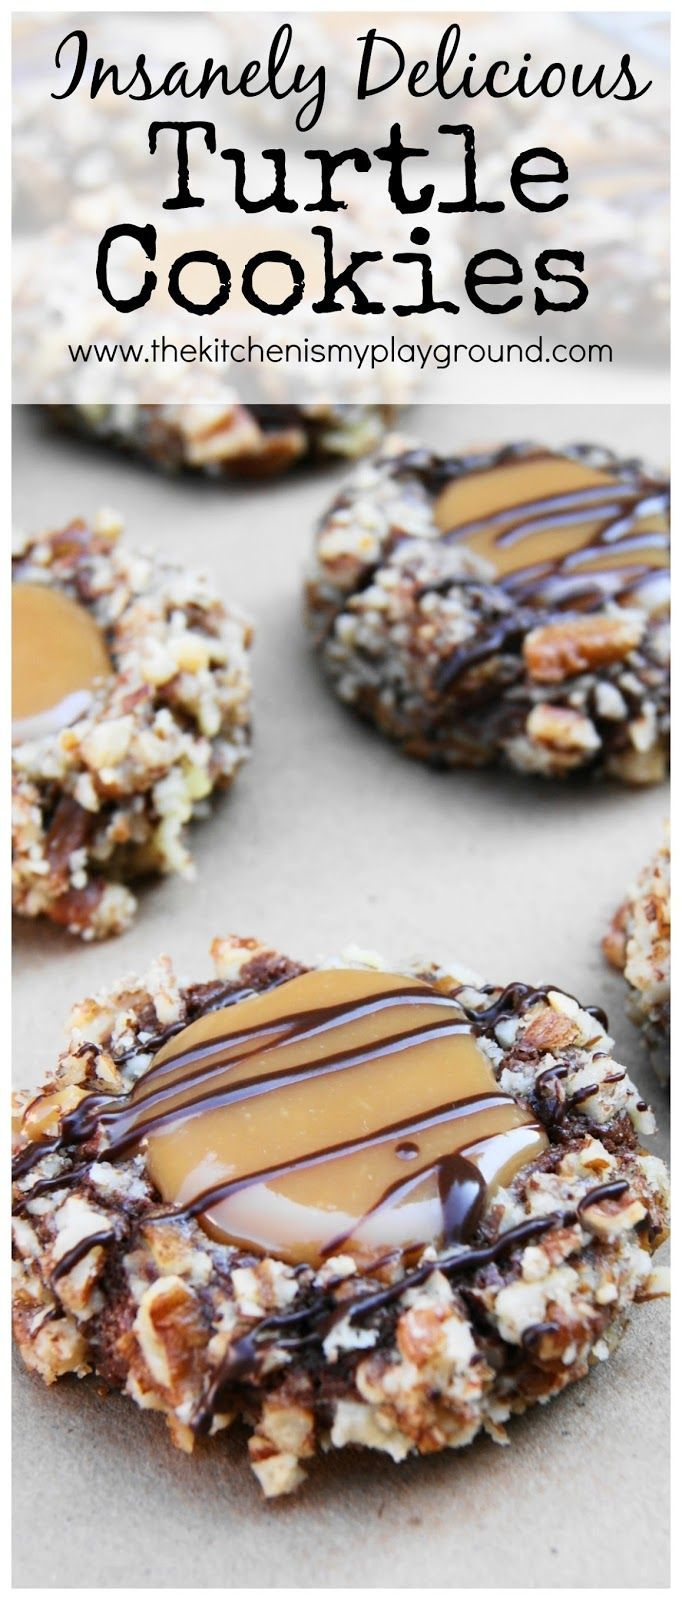 The classic flavors of turtle candy ... chocolate, pecans, and caramel ... in a soft and insanely delicious cookie.